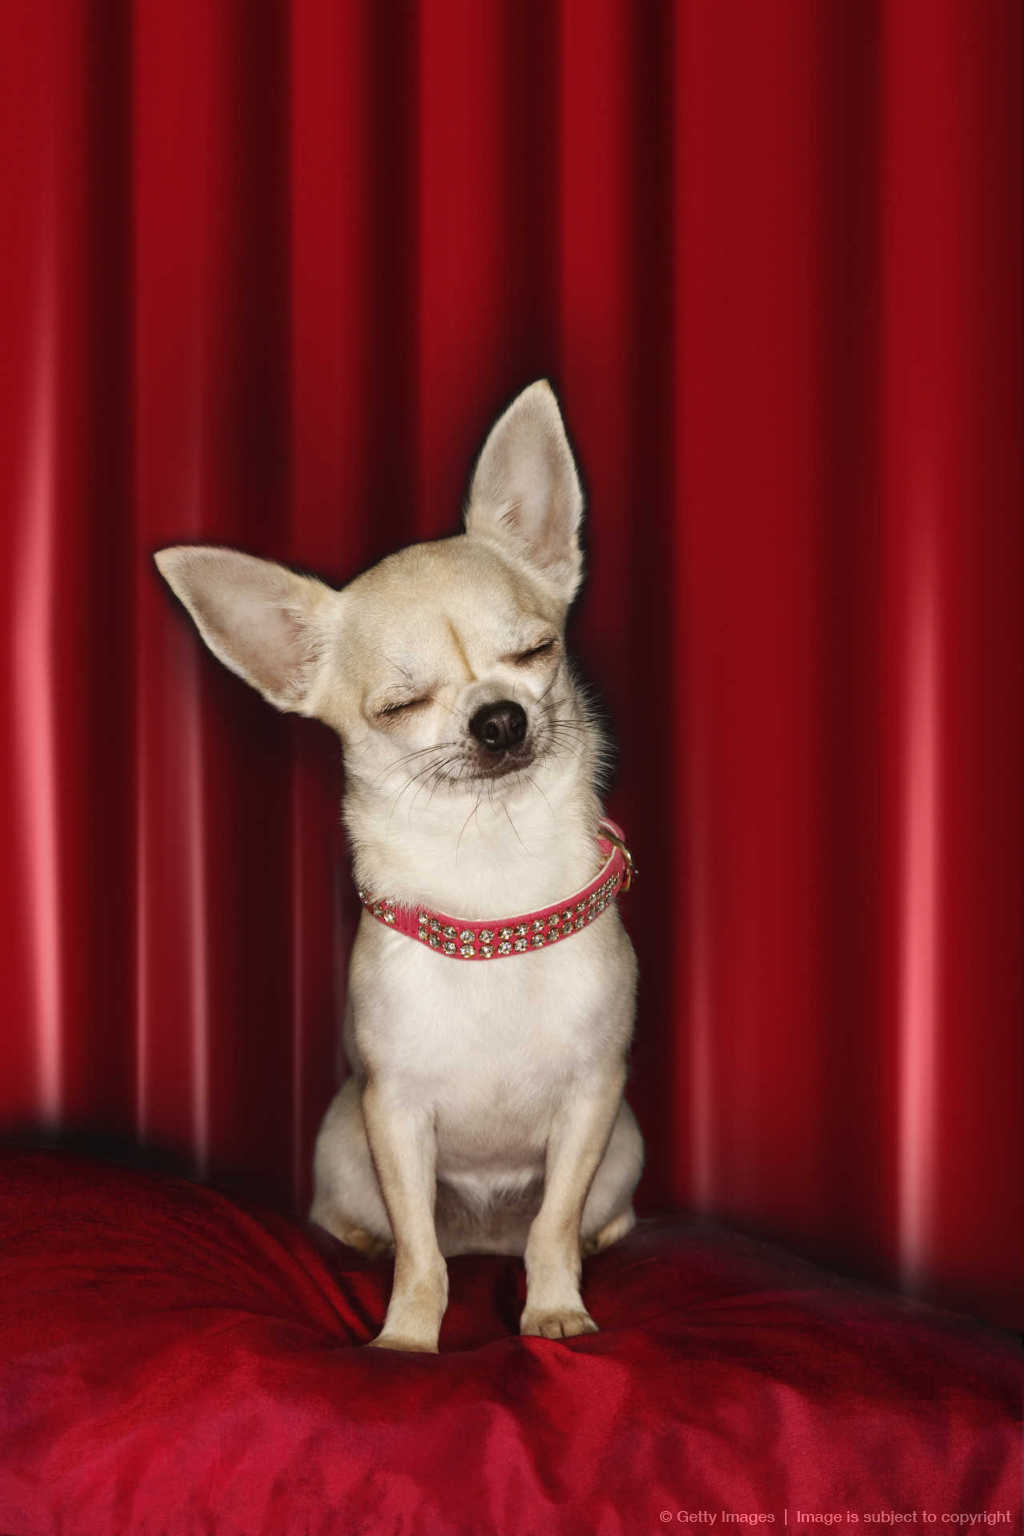 Chihuahua with Eyes Closed on Red Pillow